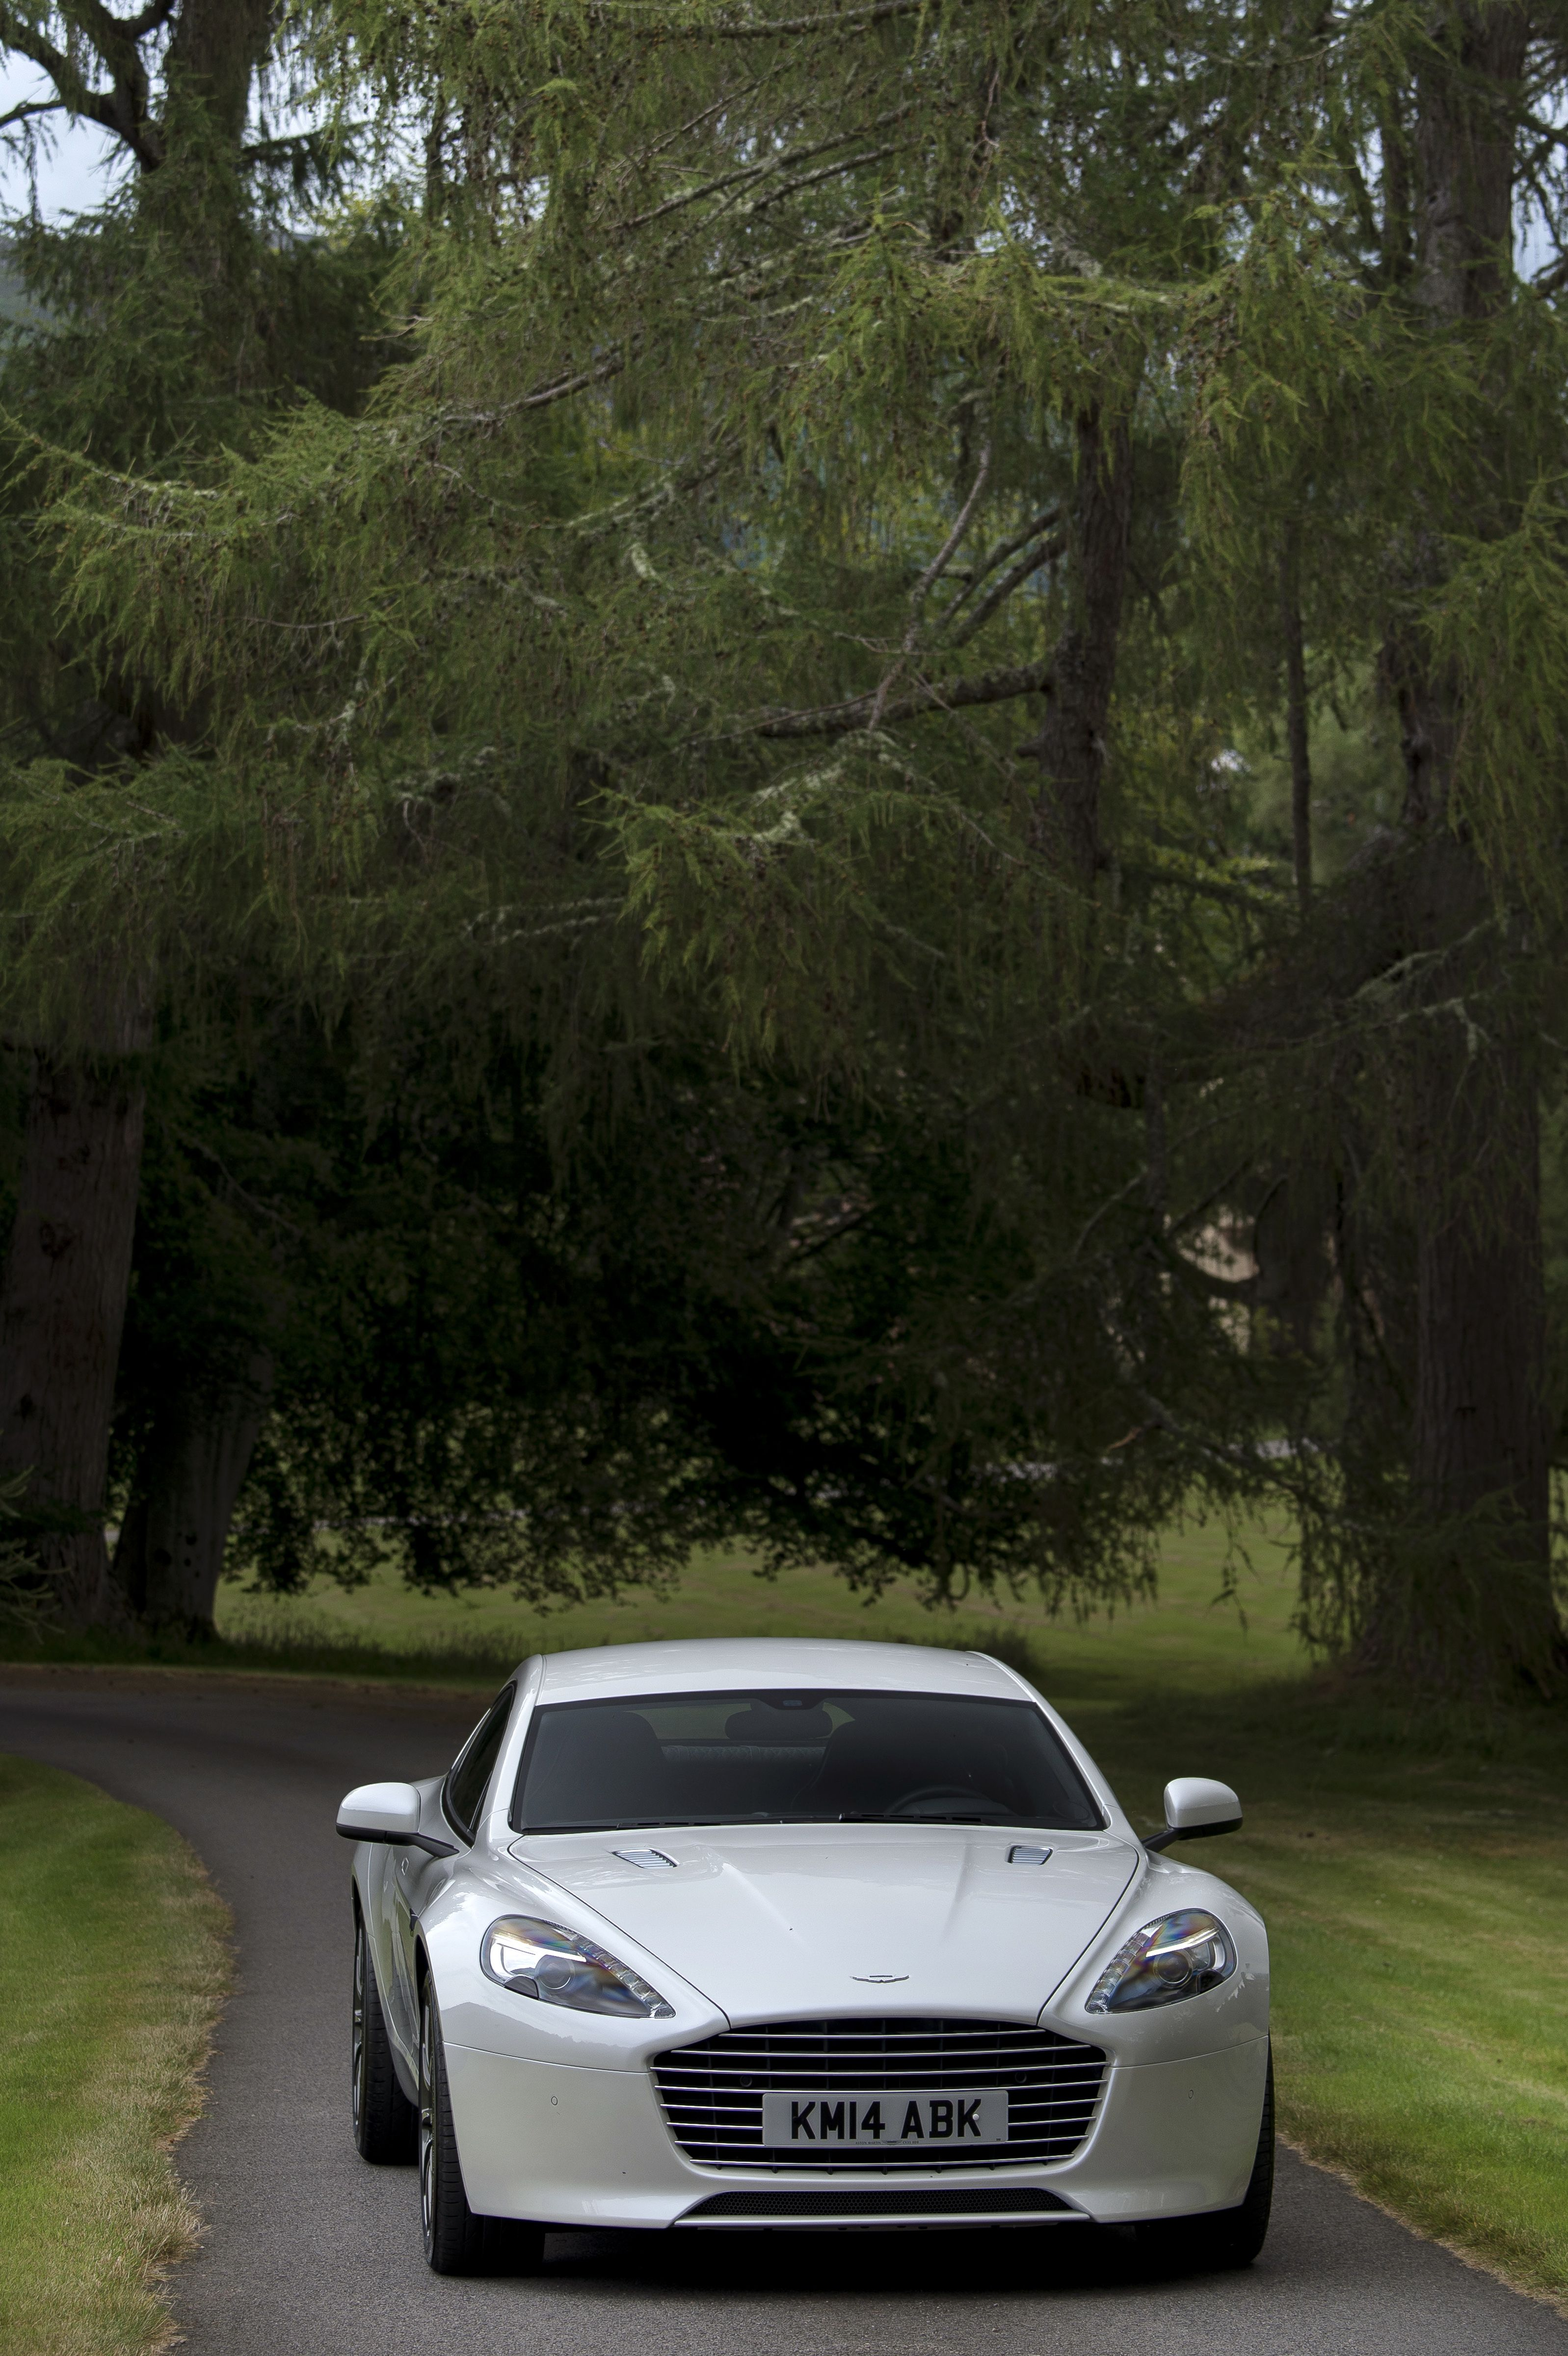 Aston Martin Rapide S The Worlds Most Beautiful  Door Sports Car Discover More At Www Astonmartin Com Cars Rapide S Astonmartin Cars Luxury